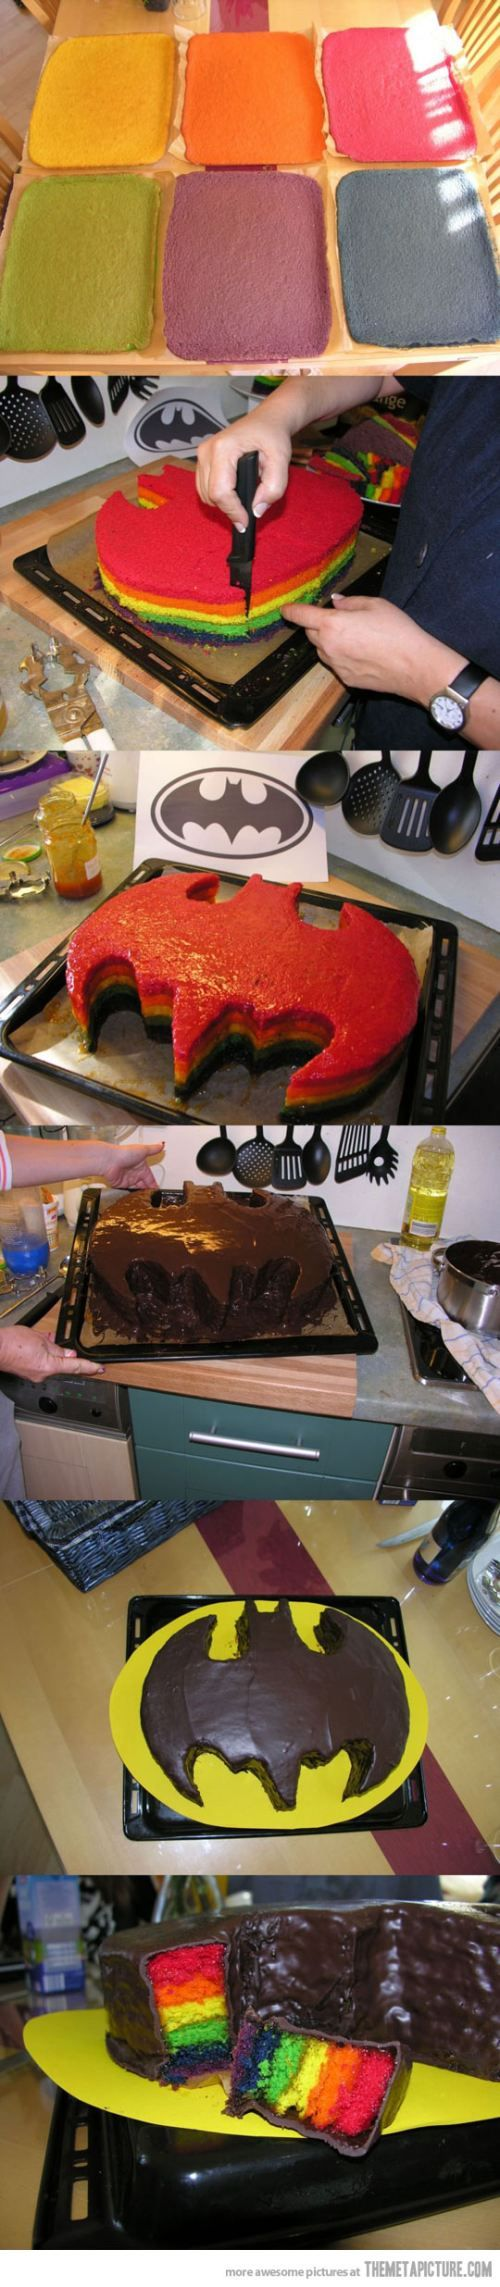 Batman layered cake